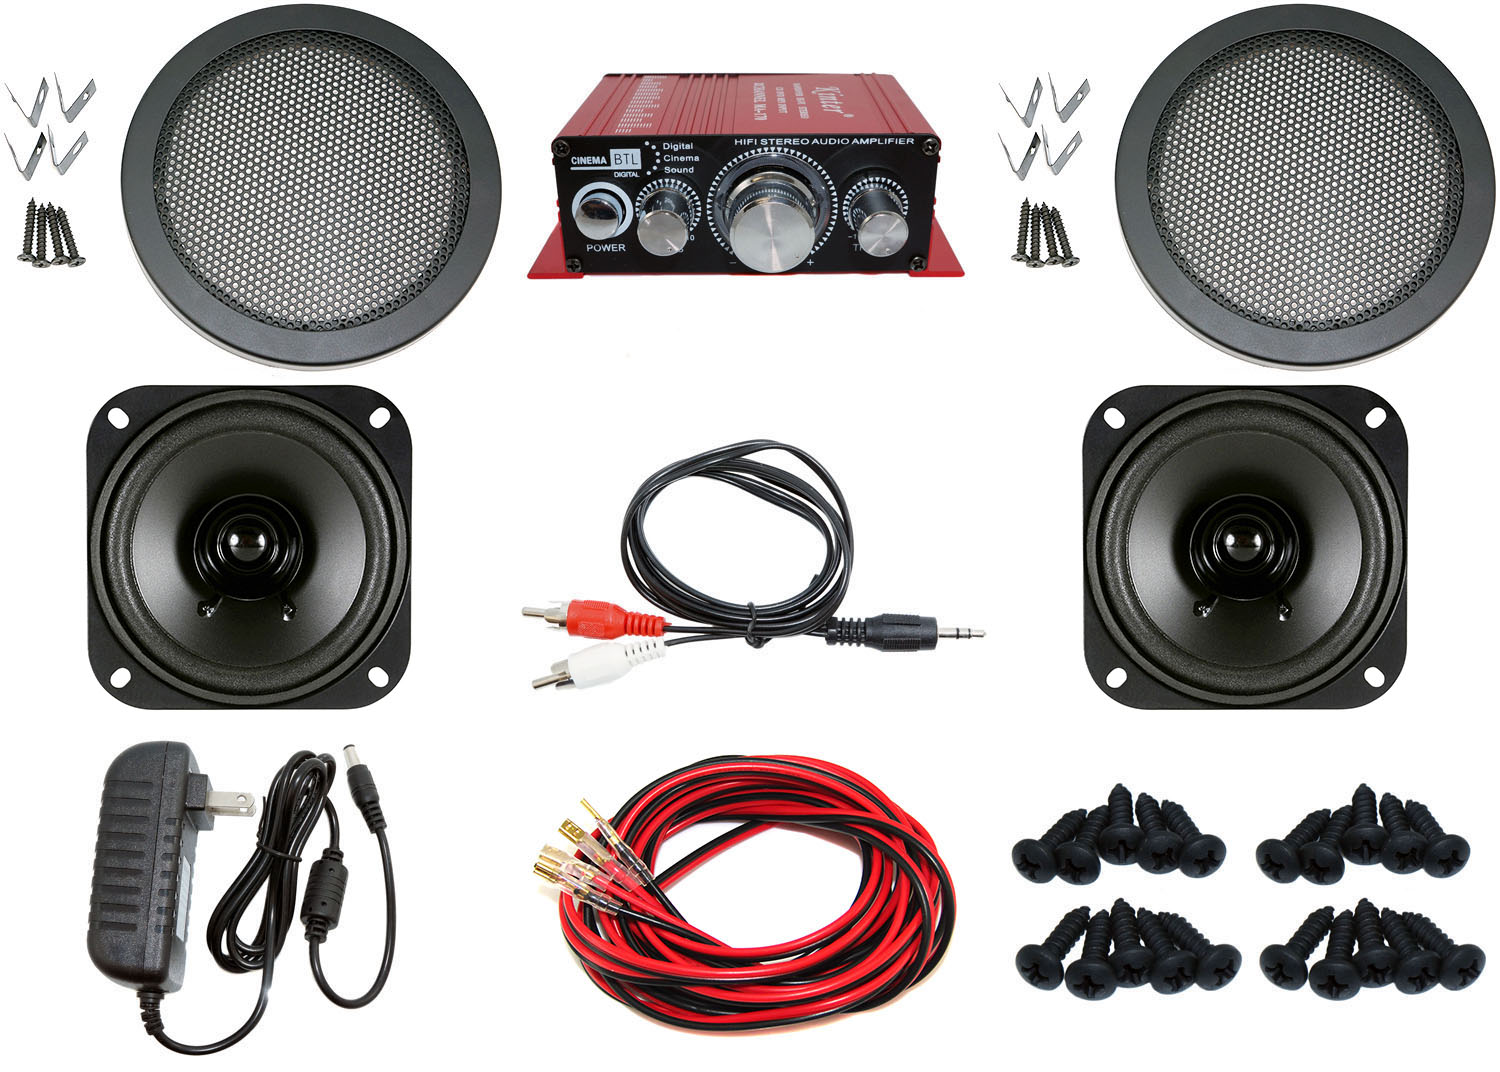 Complete Audio Kit for Arcade Game, MAME Cabinet, or Virtual